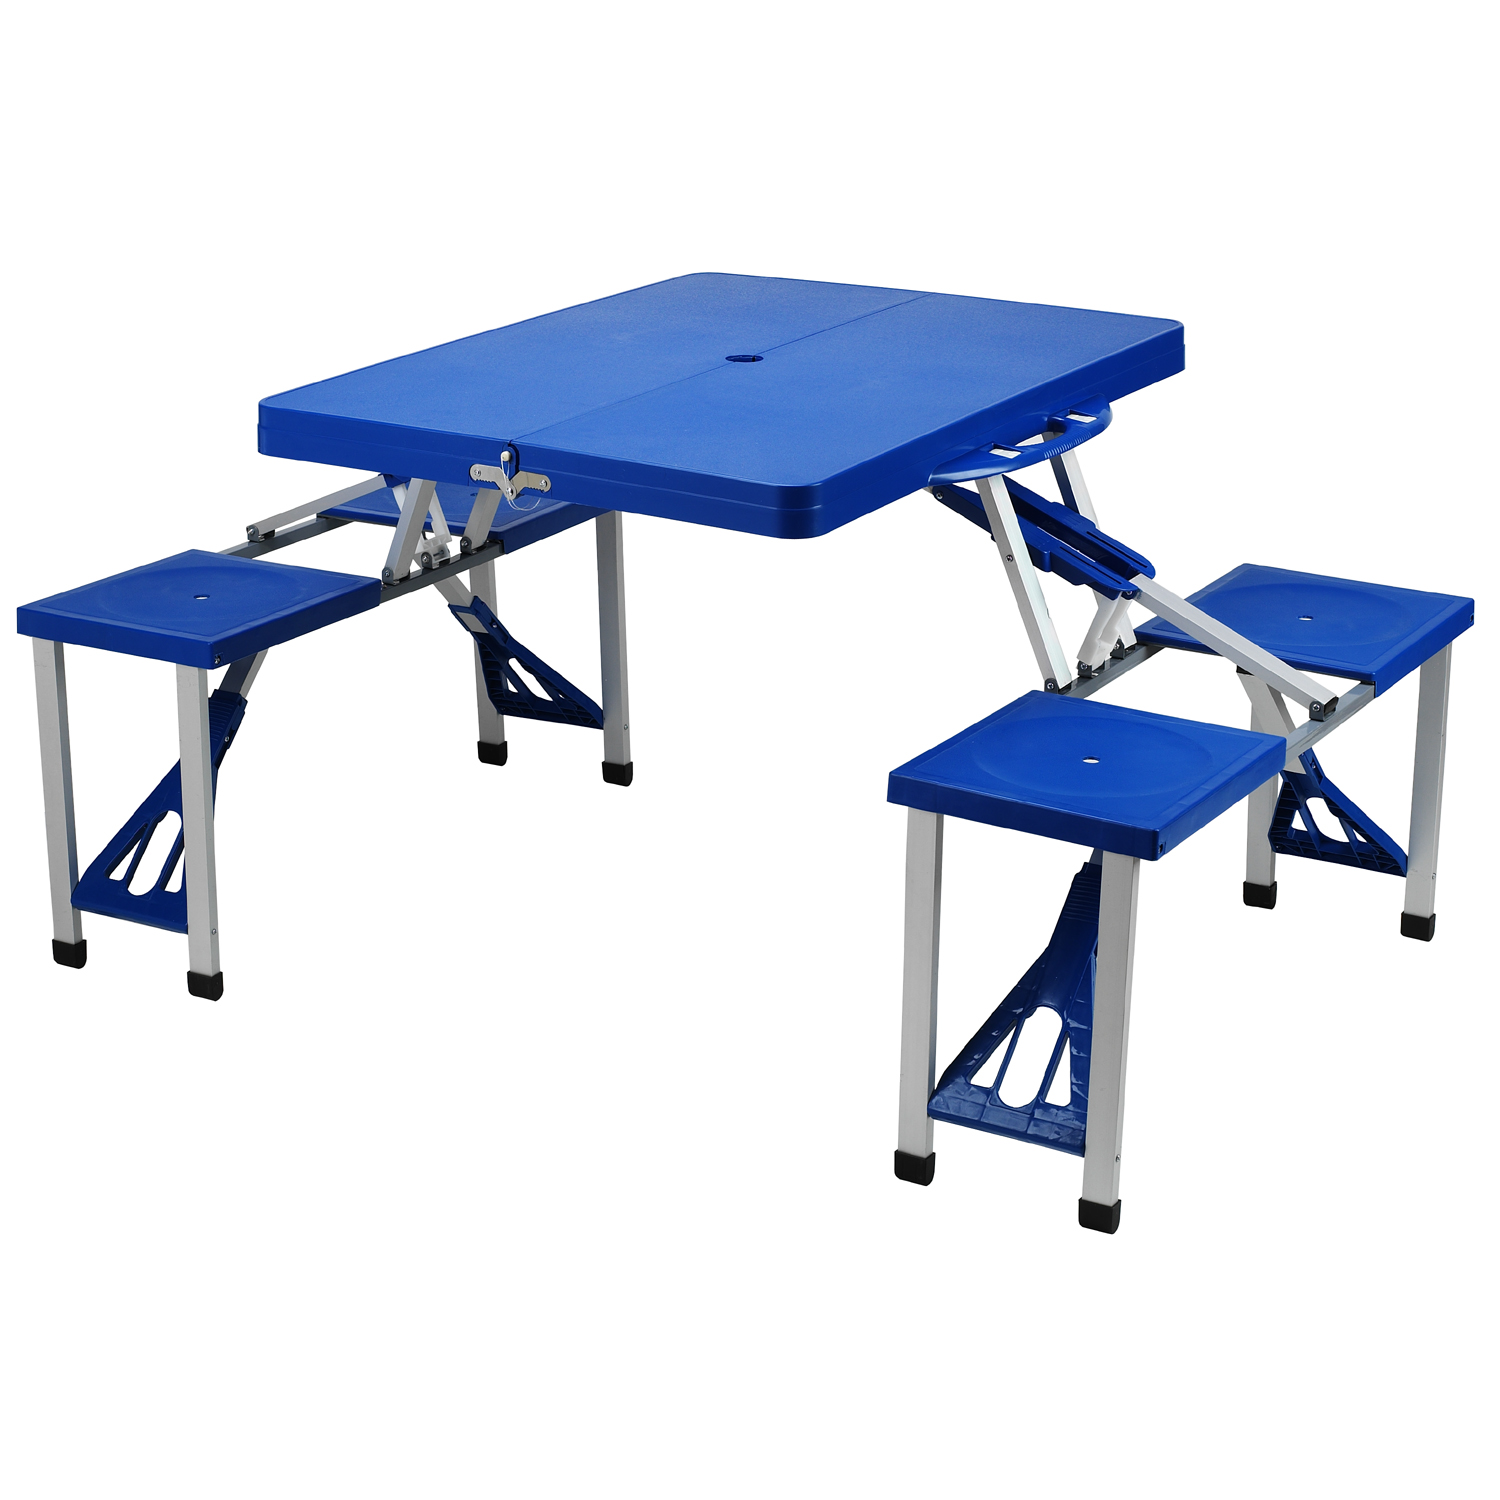 camping table picnic at ascot portable picnic table set, blue KAYWYOI